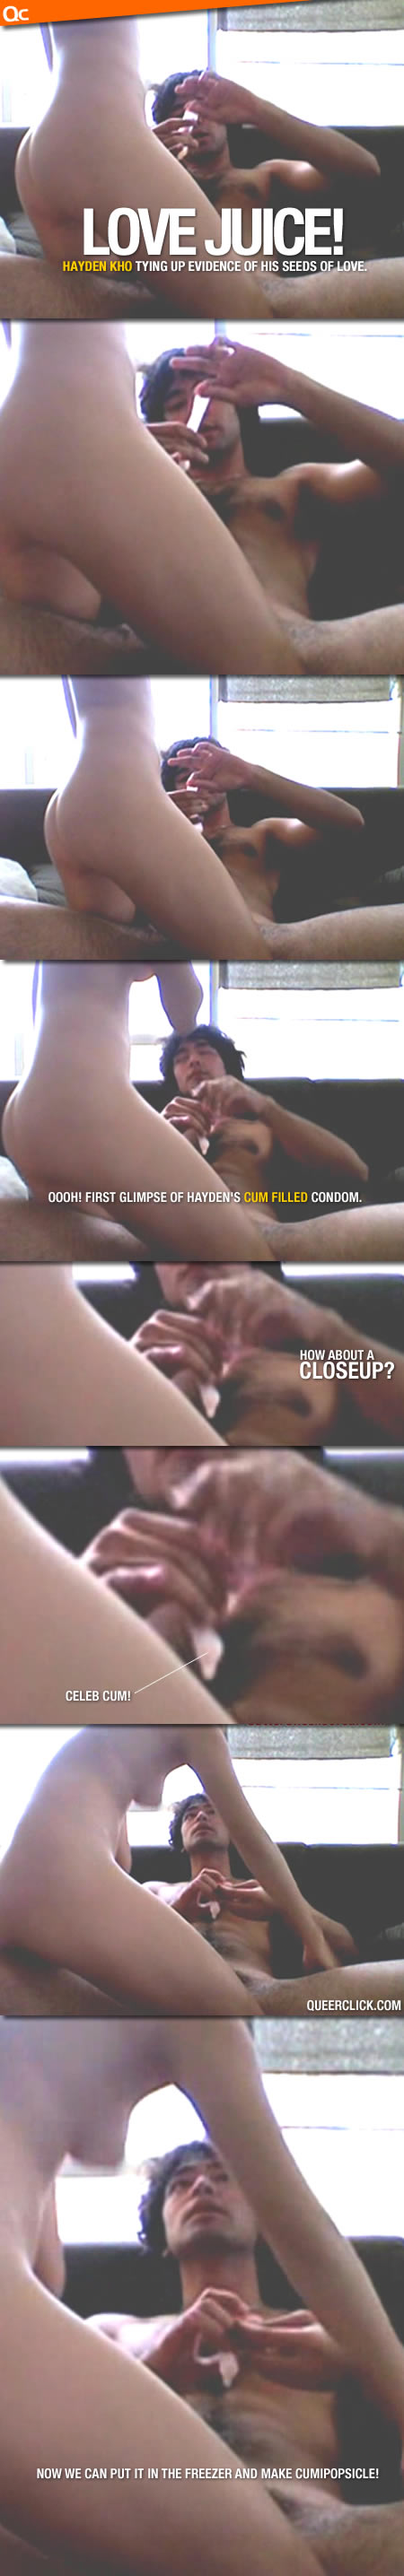 Third Hayden Kho Sex Video with Maricar Reyes Leaked